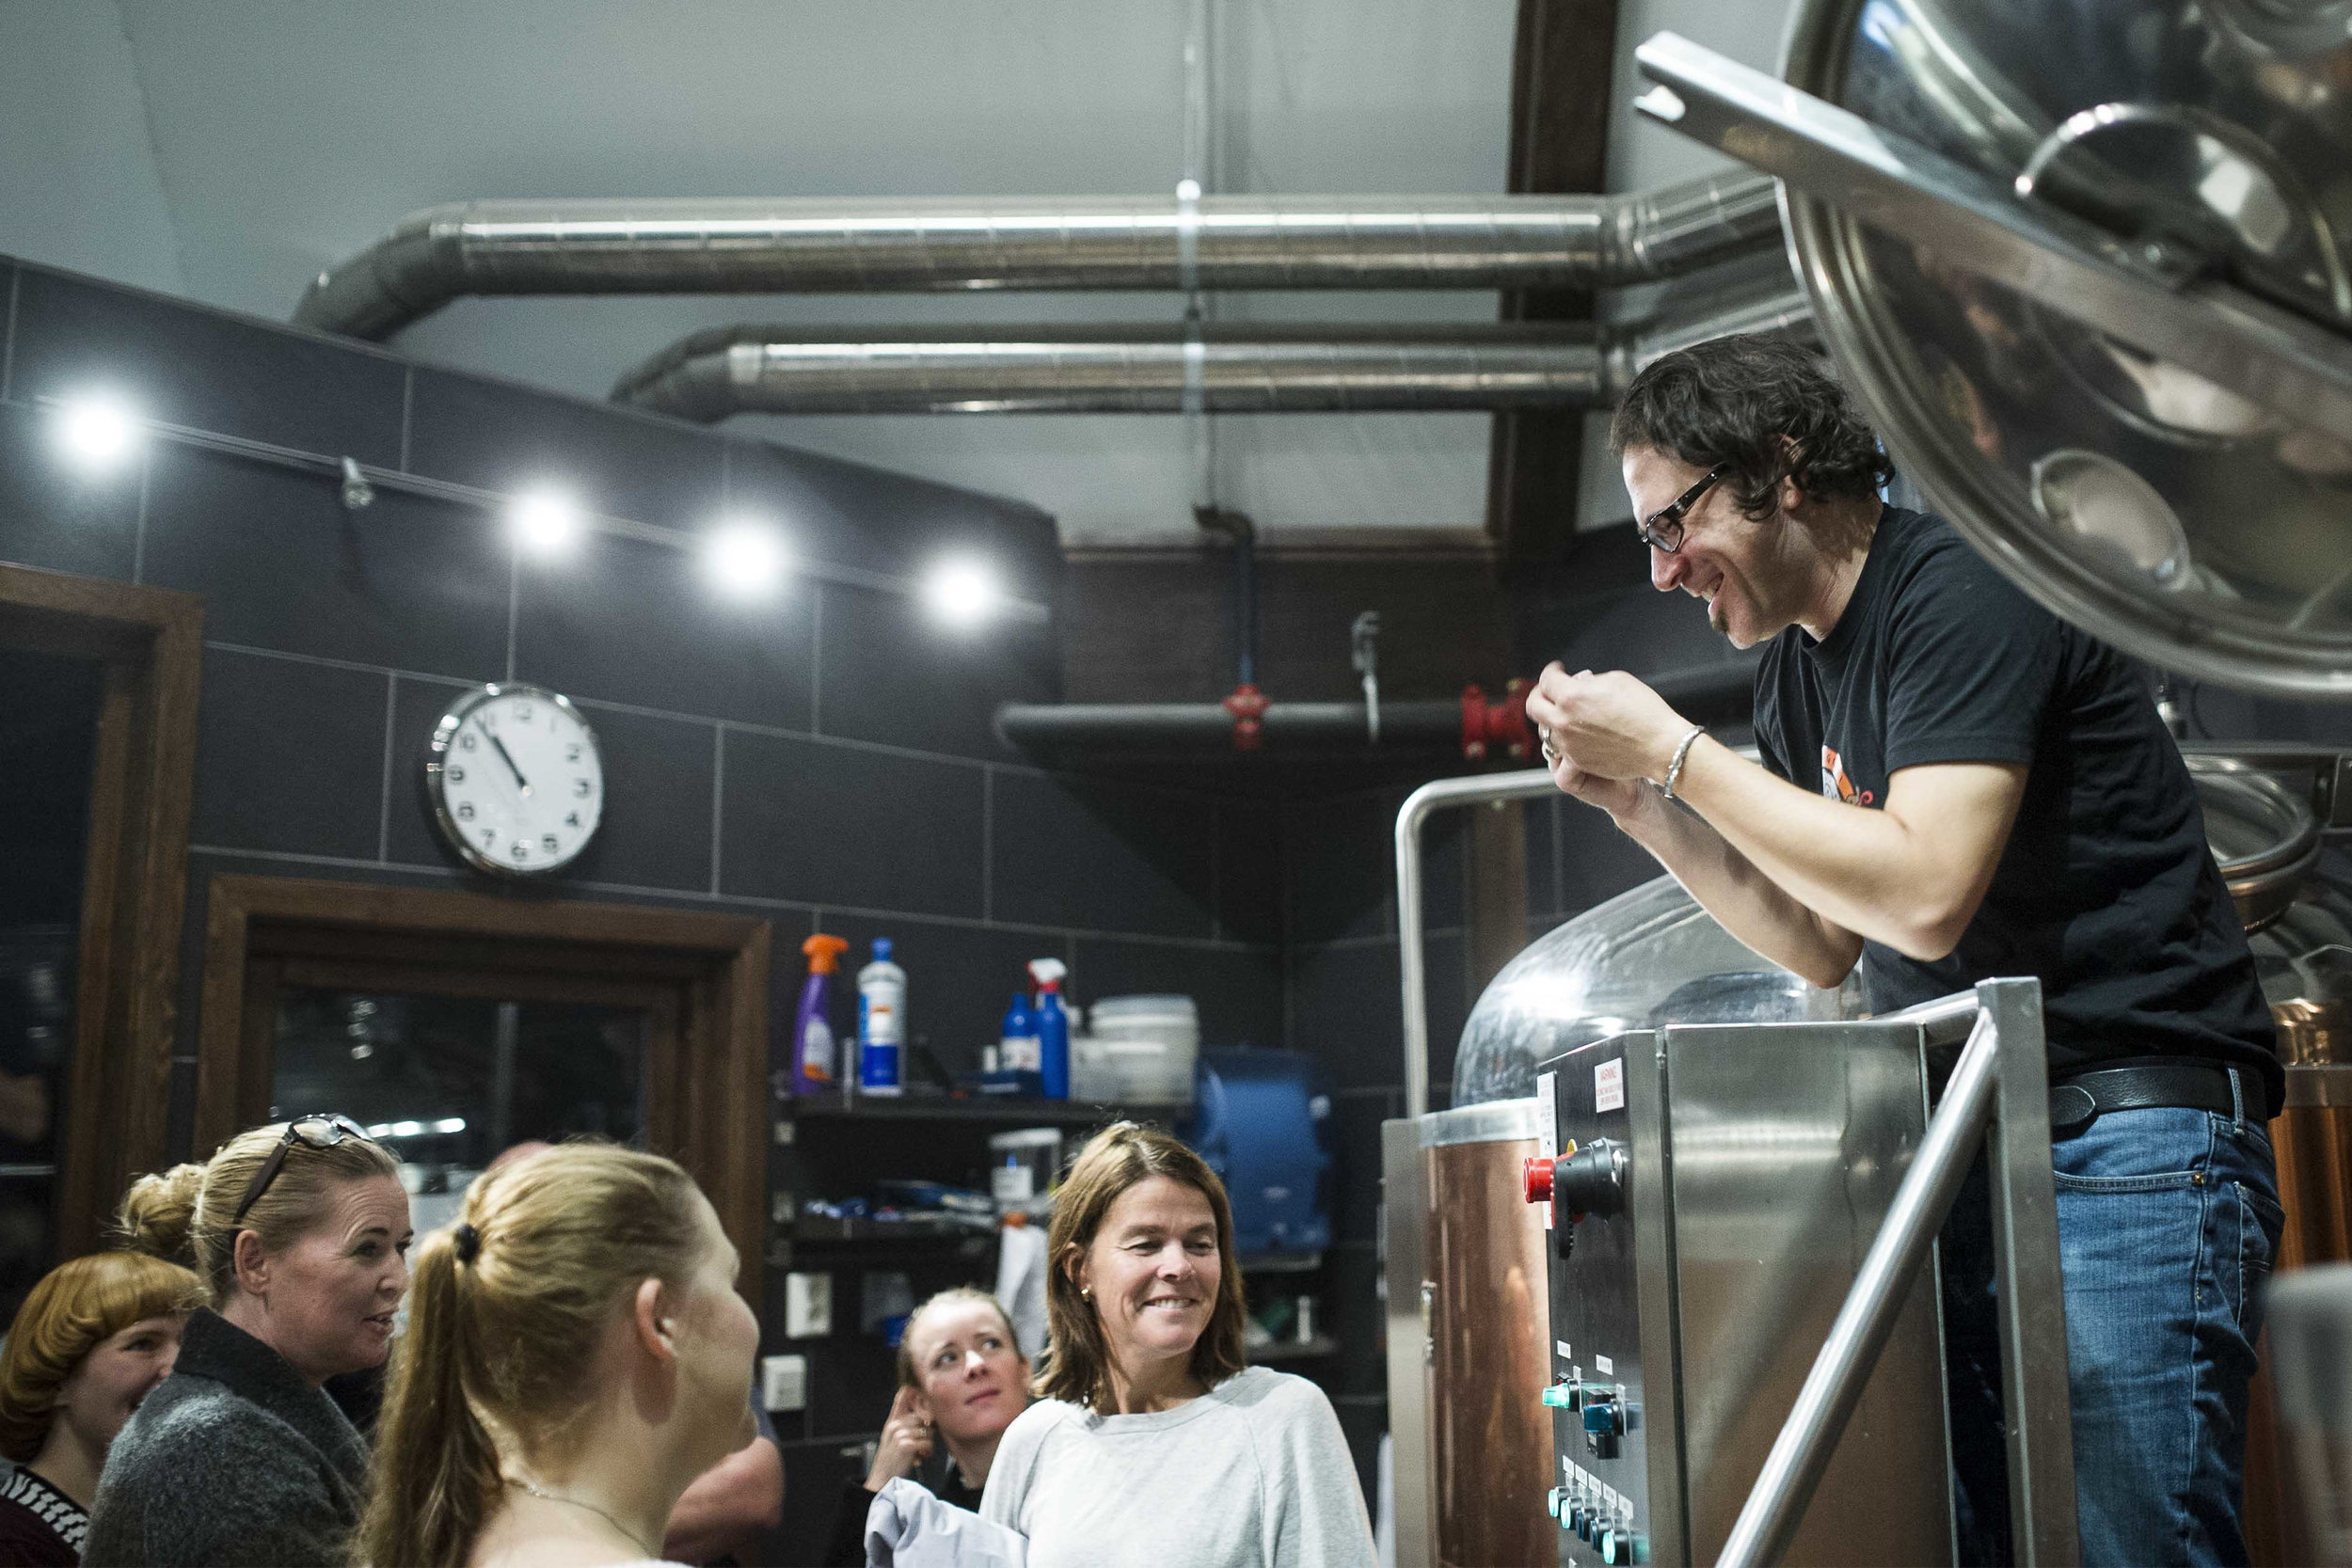 ægir brewery tour - Enjoy an educational tour of the production room of Ægir Brewery, test your beer knowledge and use your senses and discover a new world of smell and taste while tasting our popular Æger beers!